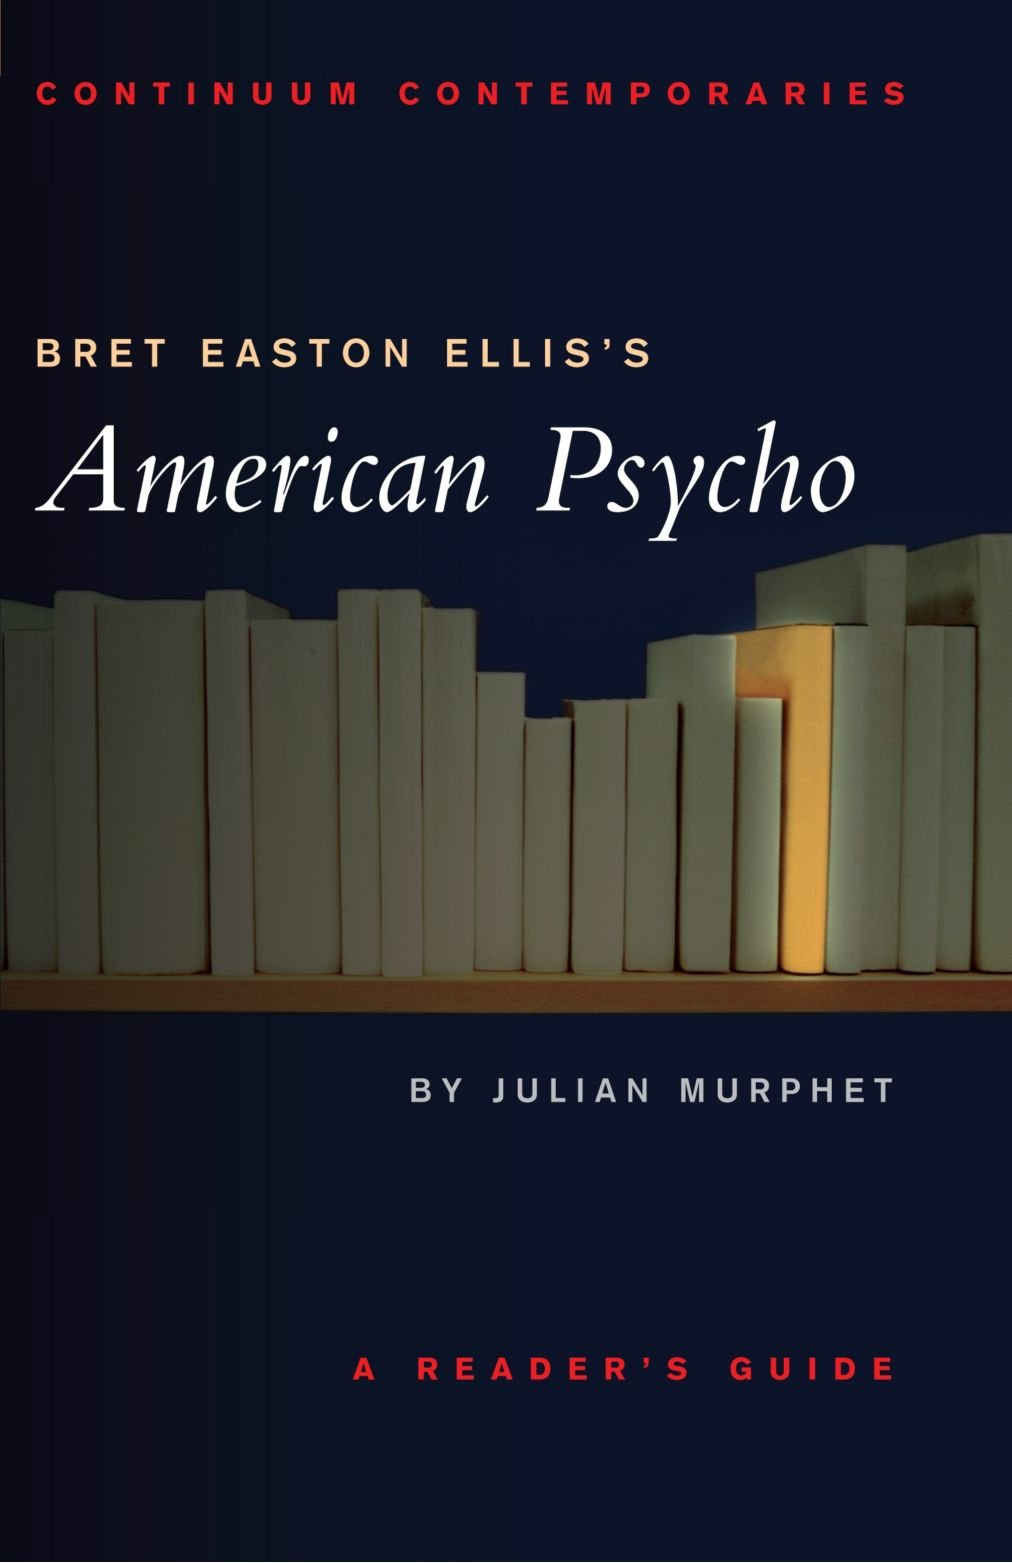 bret easton ellis s american psycho a reader s guide continuum bret easton ellis s american psycho a reader s guide continuum contemporaries series amazon co uk julian murphet 9780826452450 books